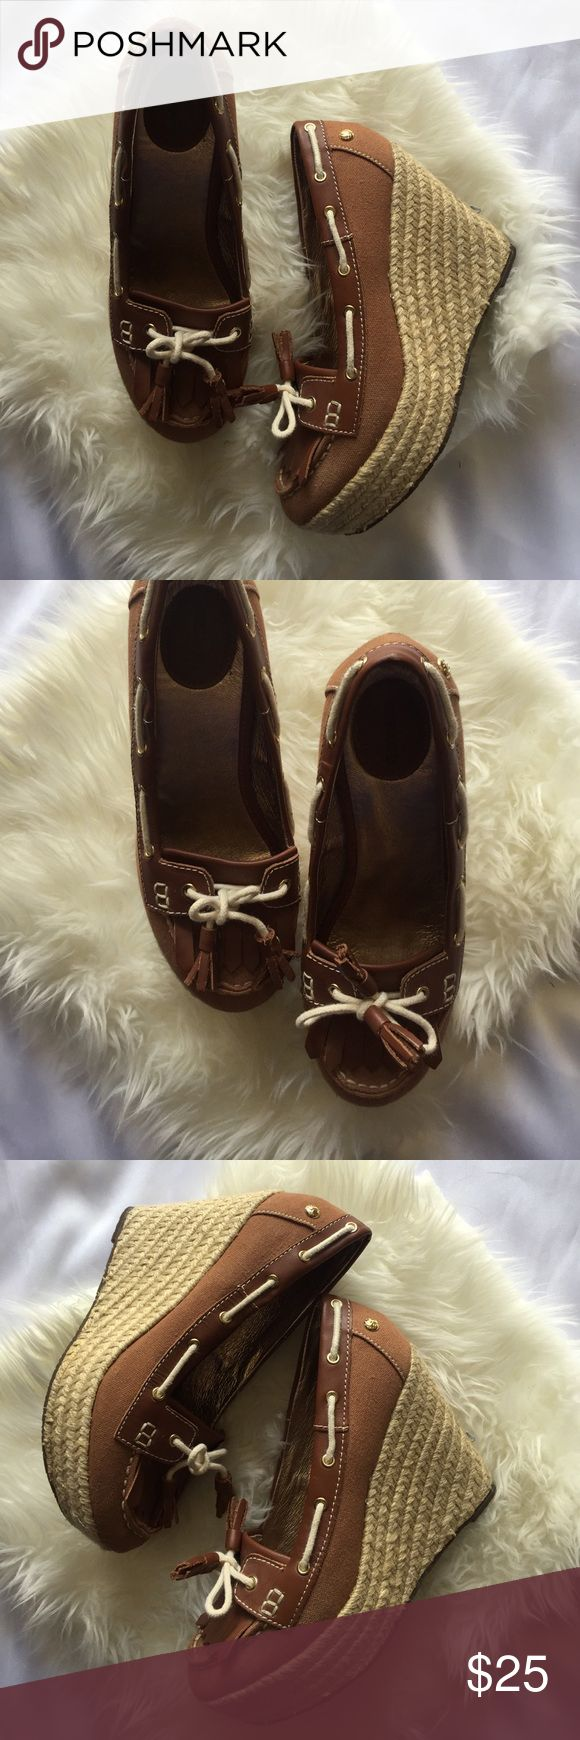 Sebago Women's Size 8 espadrilles Wedges Minor signs of wear Please See photos otherwise great pre-owned condition 4 in high Sebago Shoes Wedges